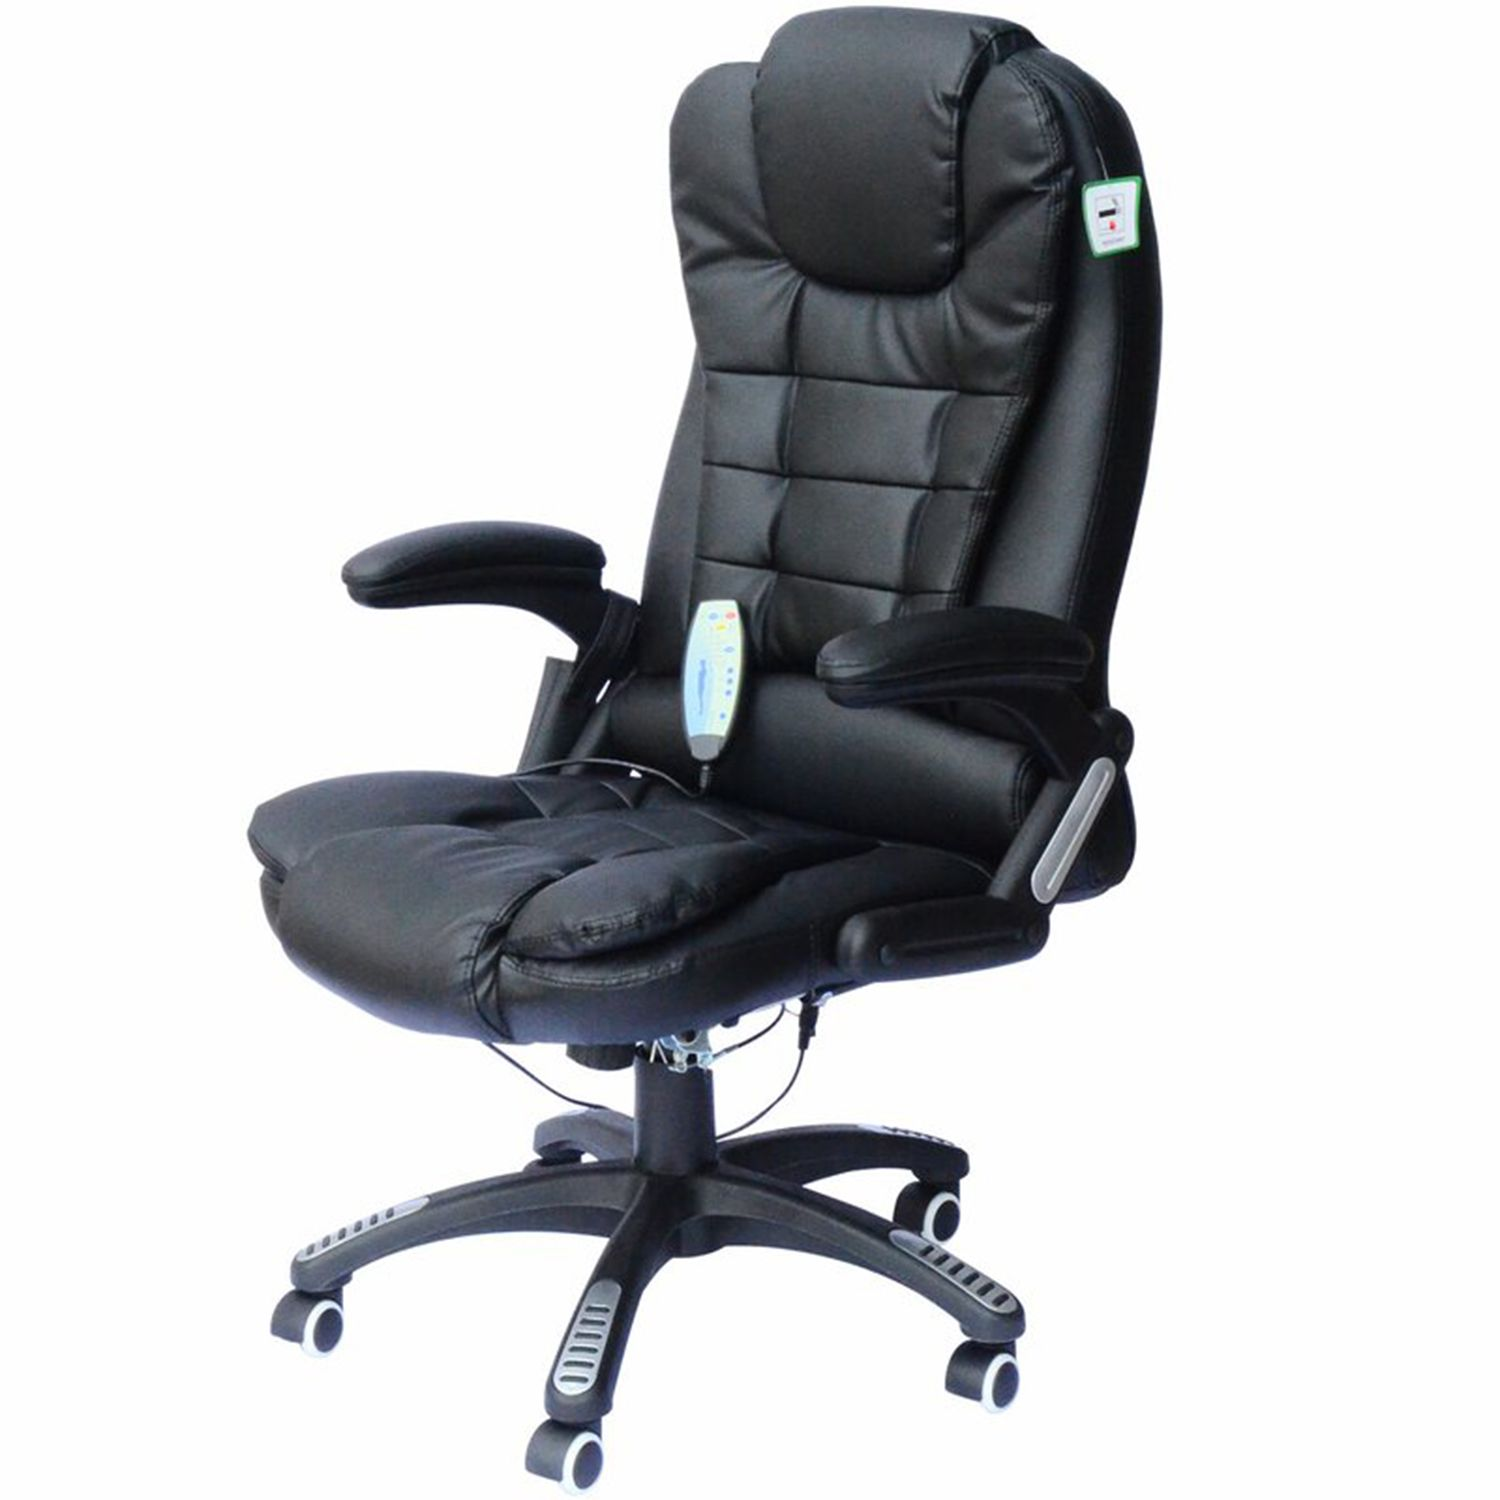 The 7 Most Comfortable Home Office Chairs According To Thousands Of Reviews In 2020 Office Massage Chair Massage Chair Chair